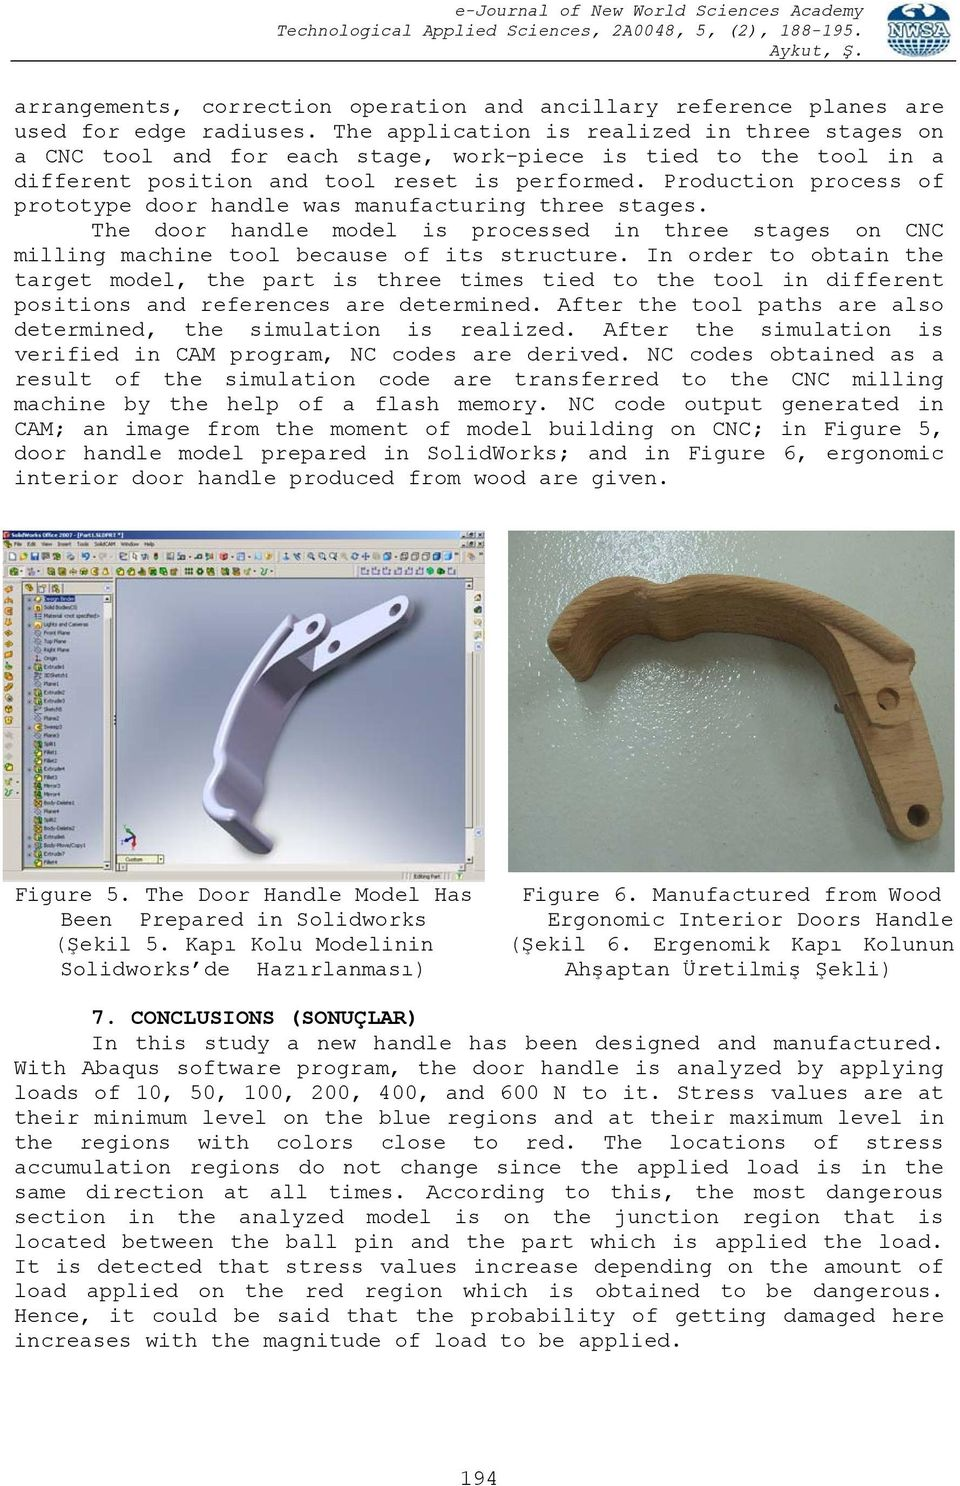 Production process of prototype door handle was manufacturing three stages. The door handle model is processed in three stages on CNC milling machine tool because of its structure.